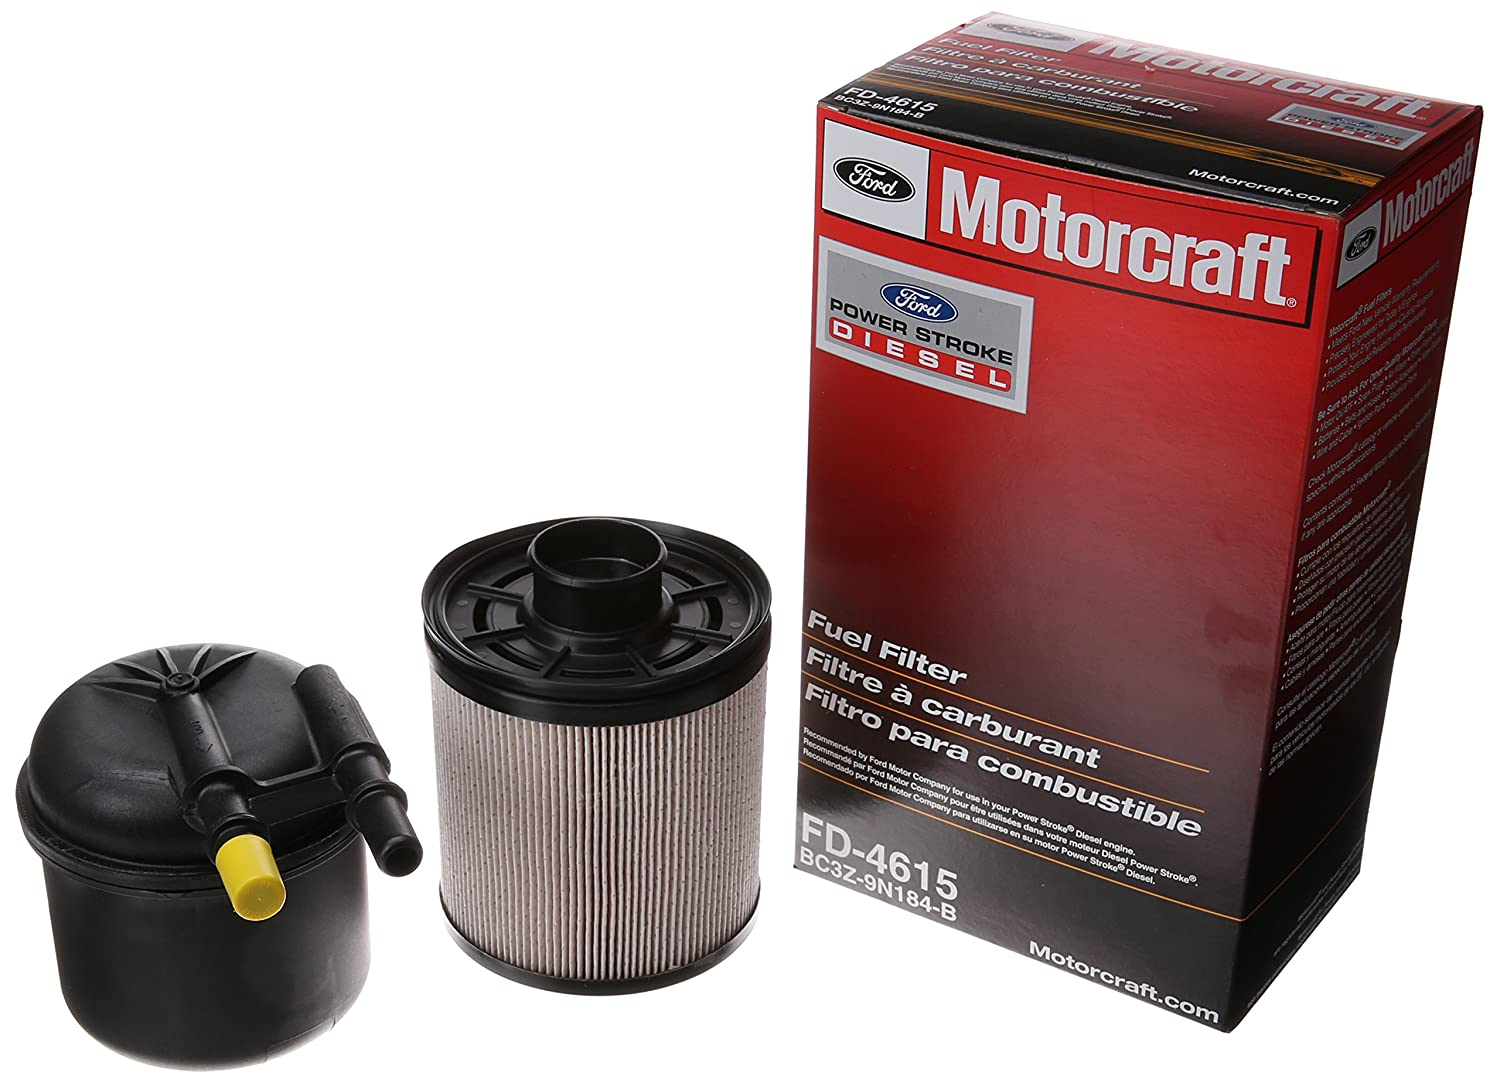 Fuel Filters Replacement Parts Automotive 1997 Toyota Camry Filter Location Motorcraft Fd 4615